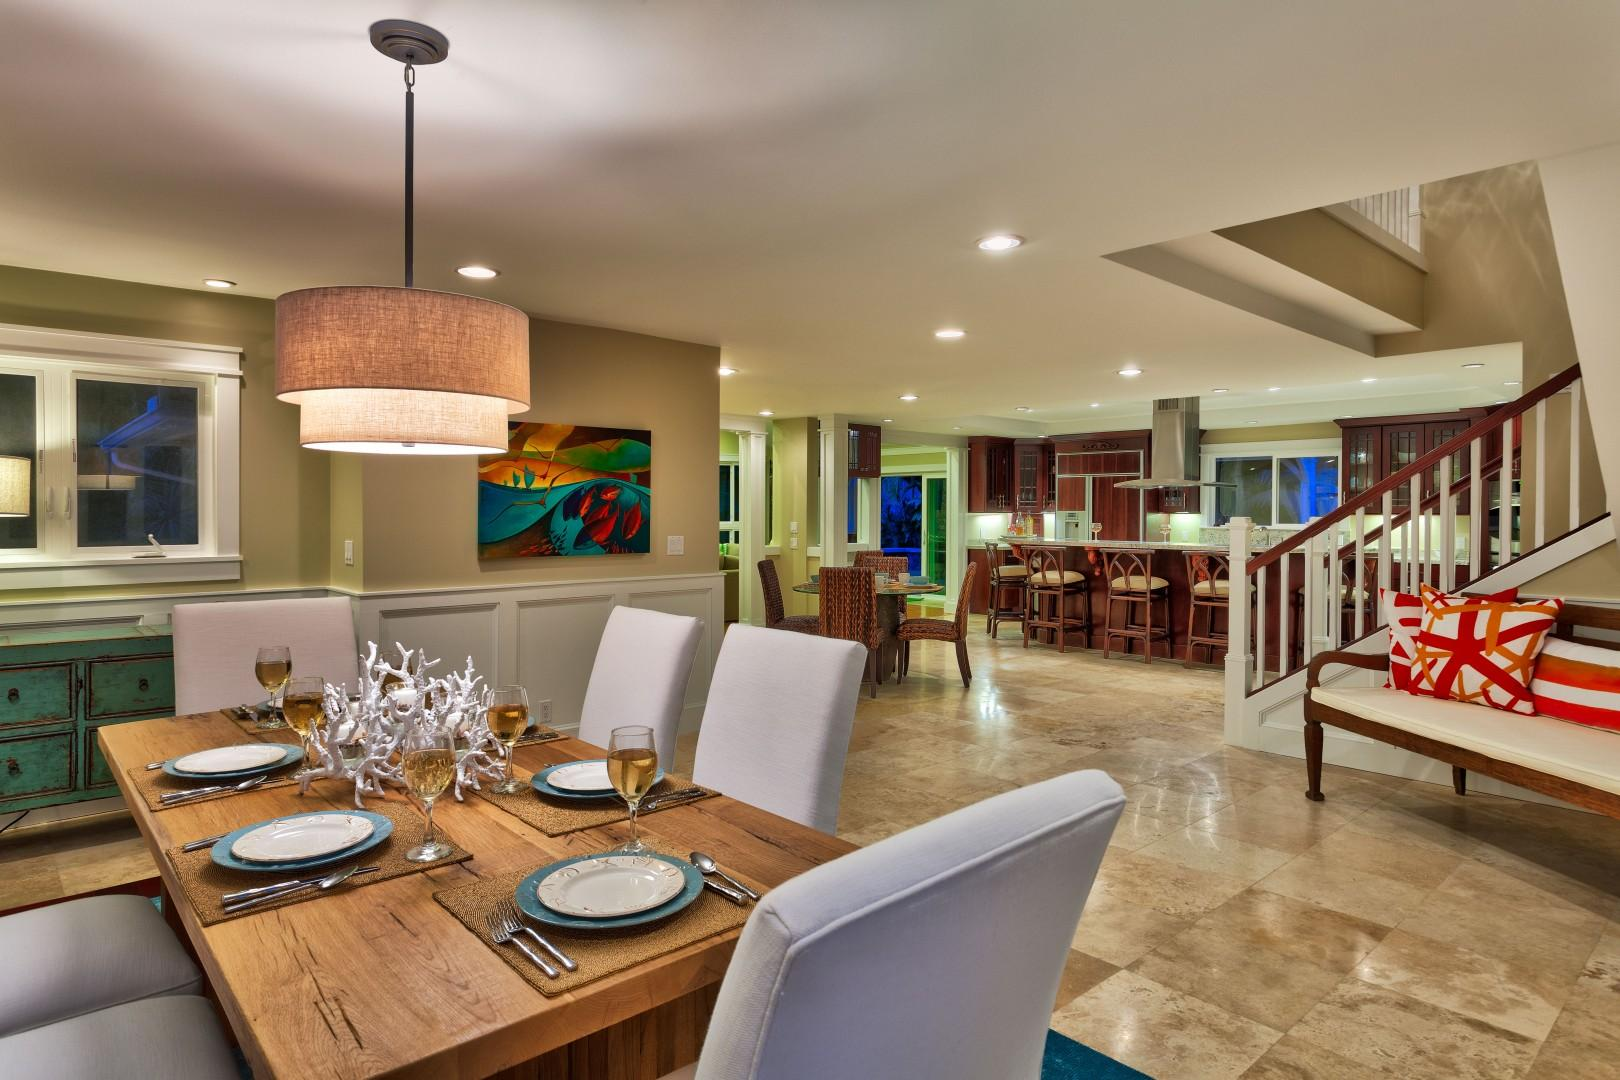 The spacious and elegant dining room, with a view of the kitchen.